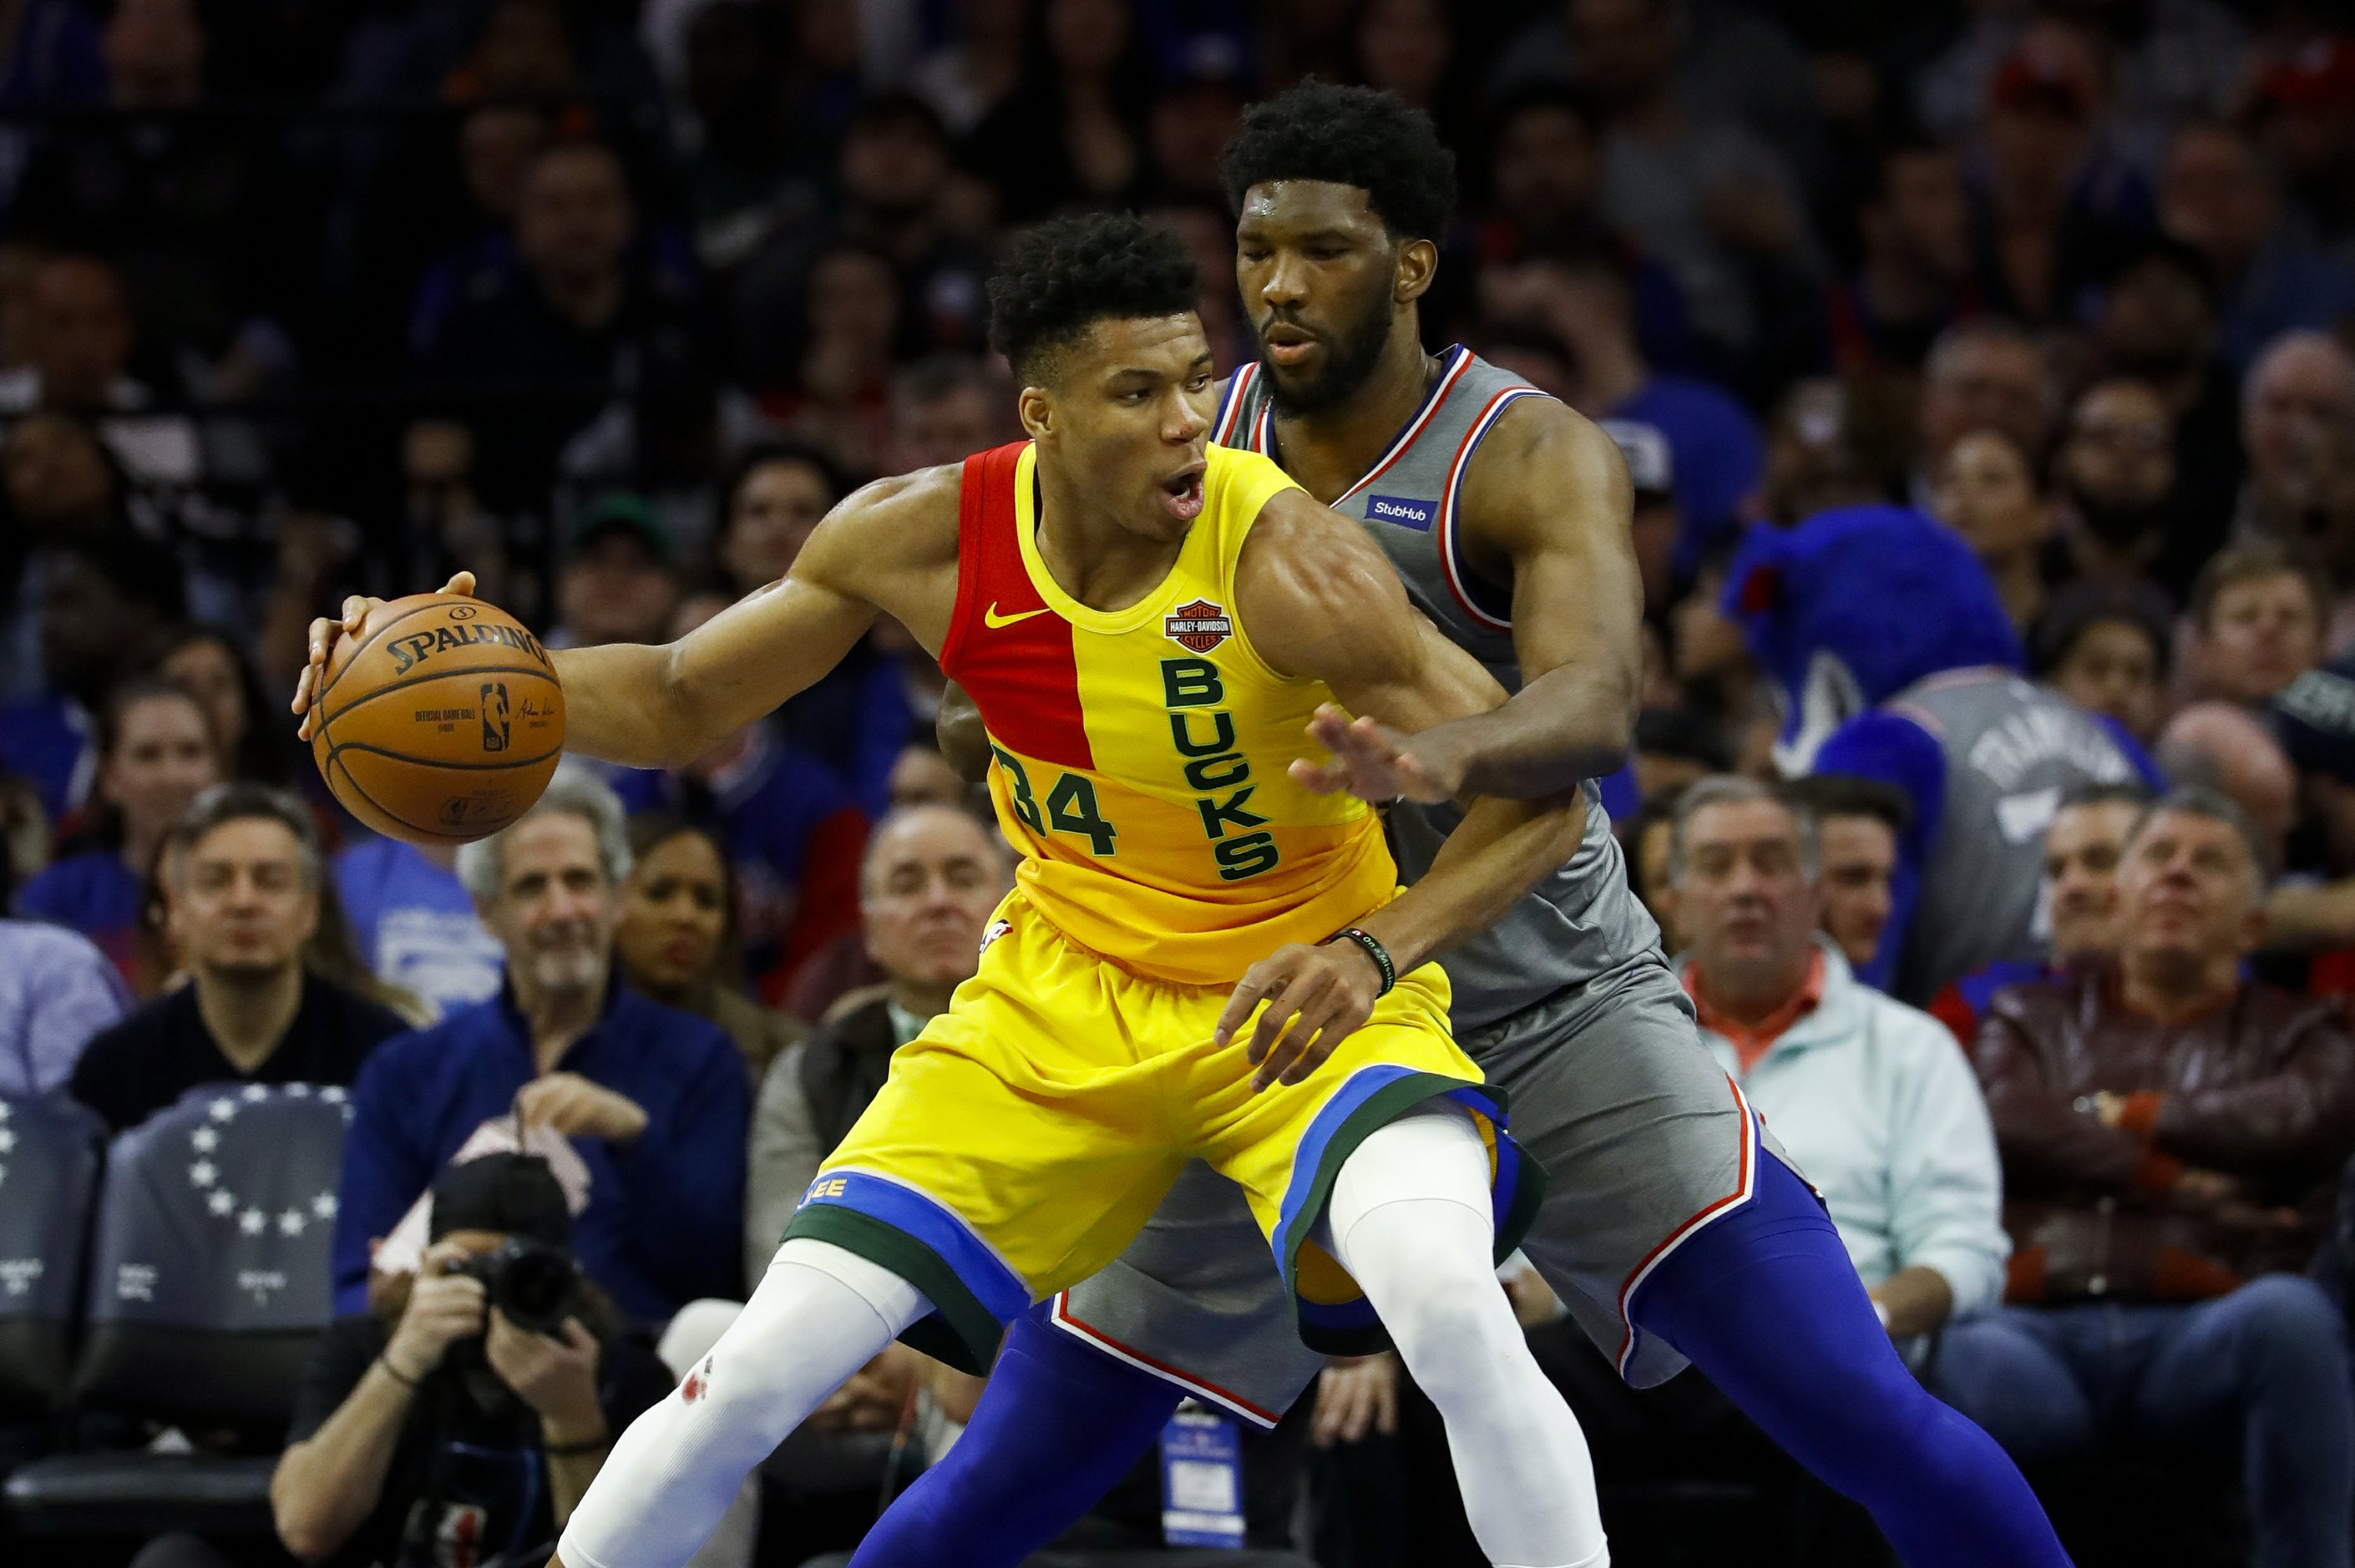 Fans of NBA could feel impact of China trade wars